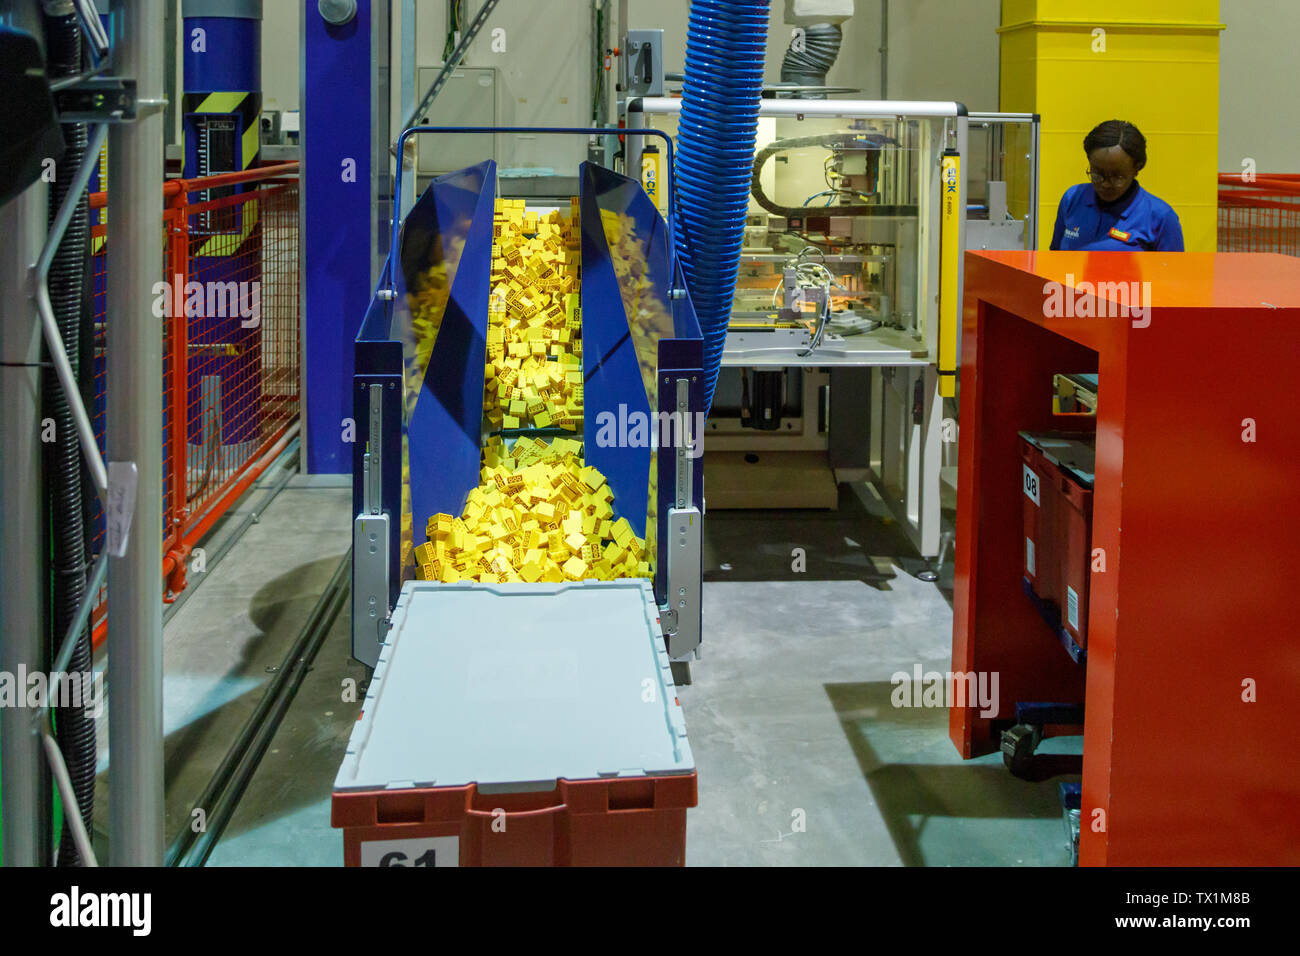 DUBAI, UAE, JANUARY 09, 2019: Technological process of creating Lego bricks in Legoland. Many yellow bricks Lego are ready to packing - Stock Image